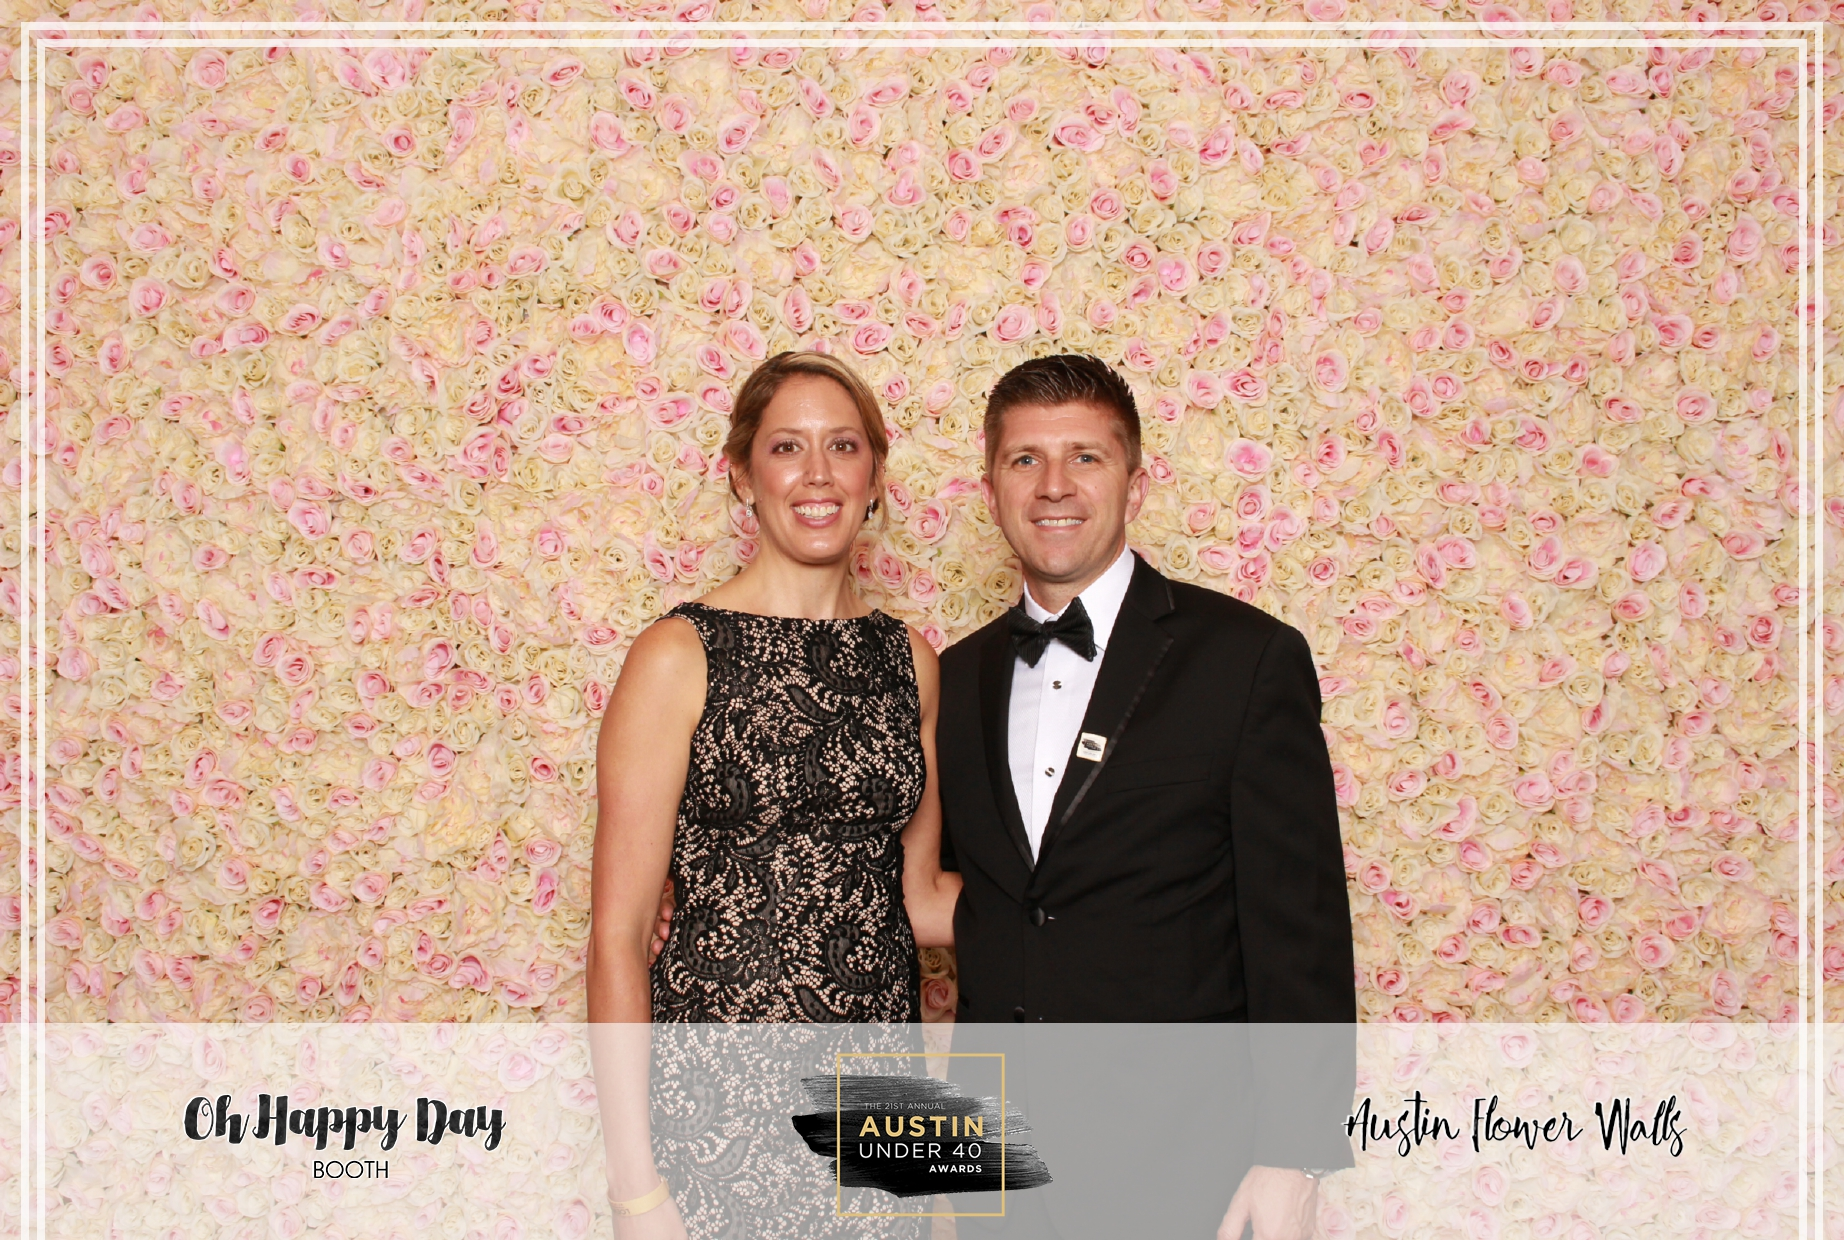 Oh Happy Day Booth - Austin Under 40-43.jpg